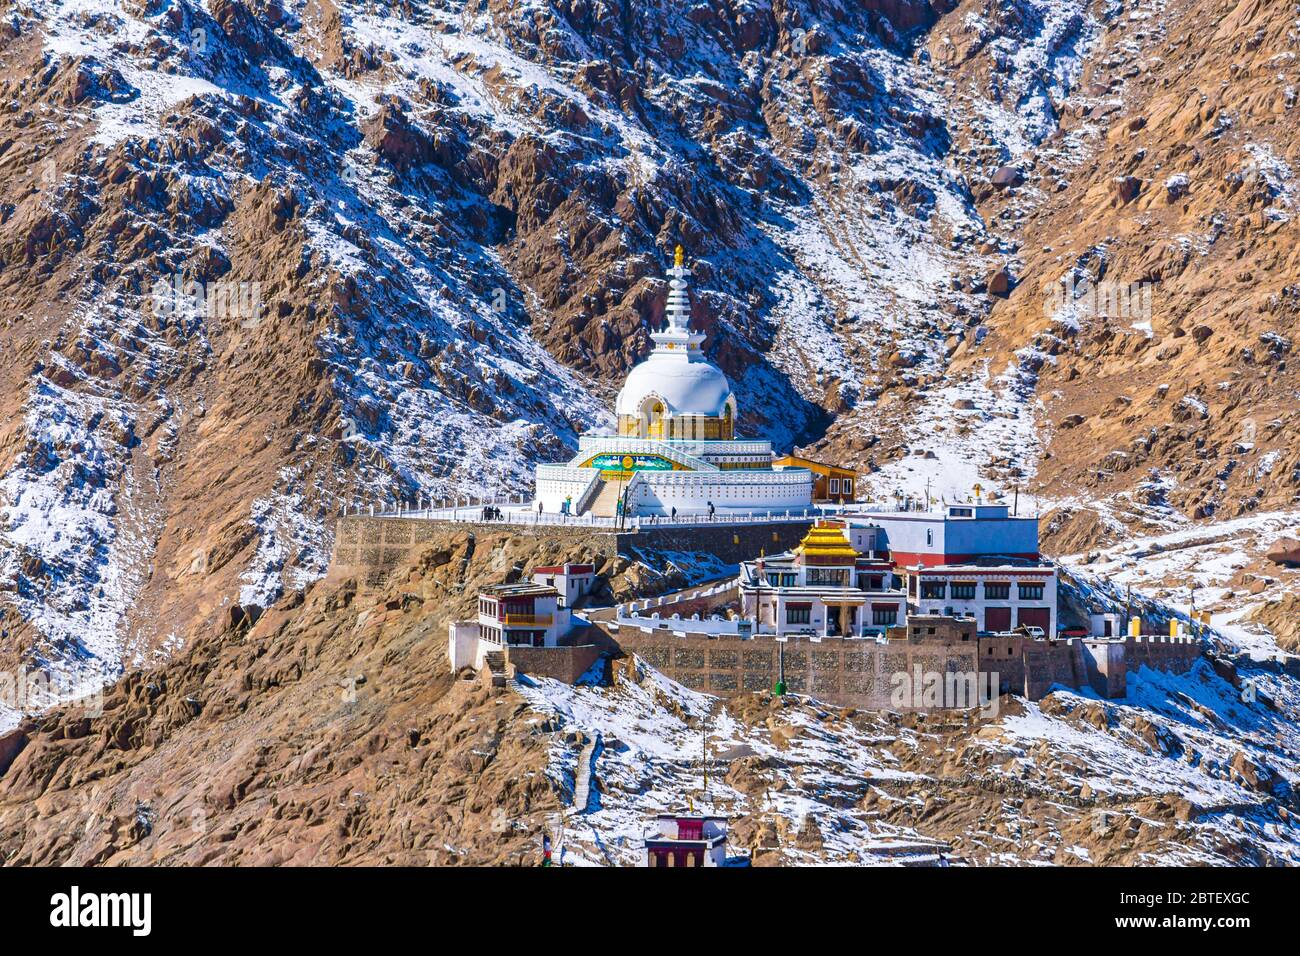 The stupa is one of the ancient & oldest stupas located in Leh city, Ladakh, Jammu & Kashmir, India, Asia. Shanti stupa is a silent and peaceful place. Stock Photo